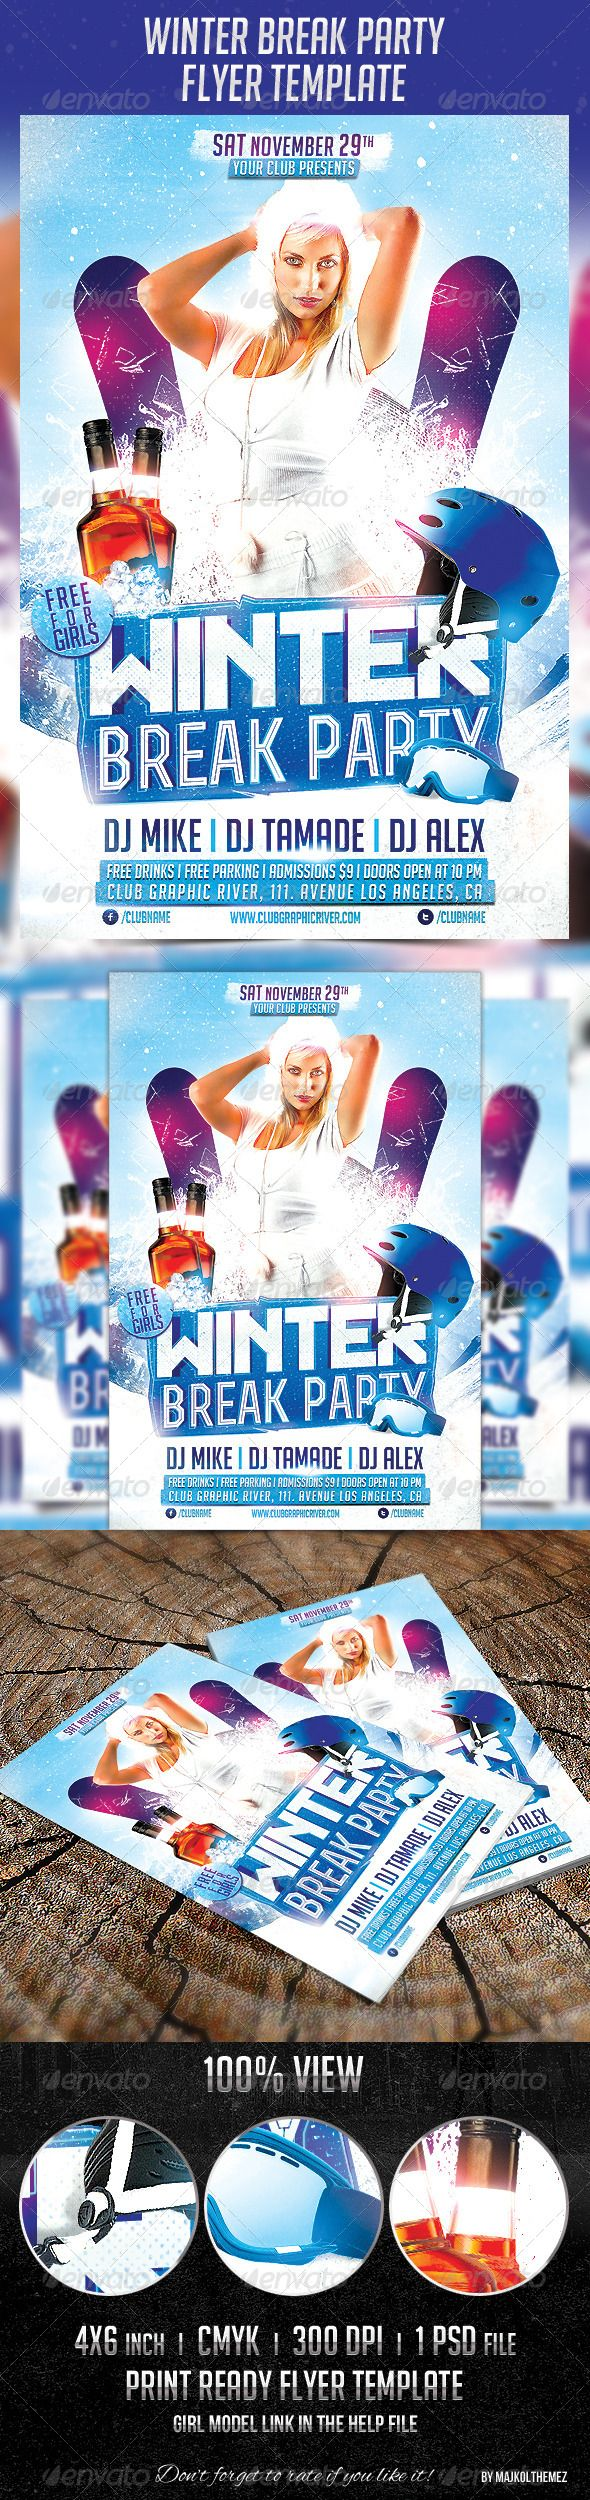 best images about flyer templates psd fresh winter break party flyer template